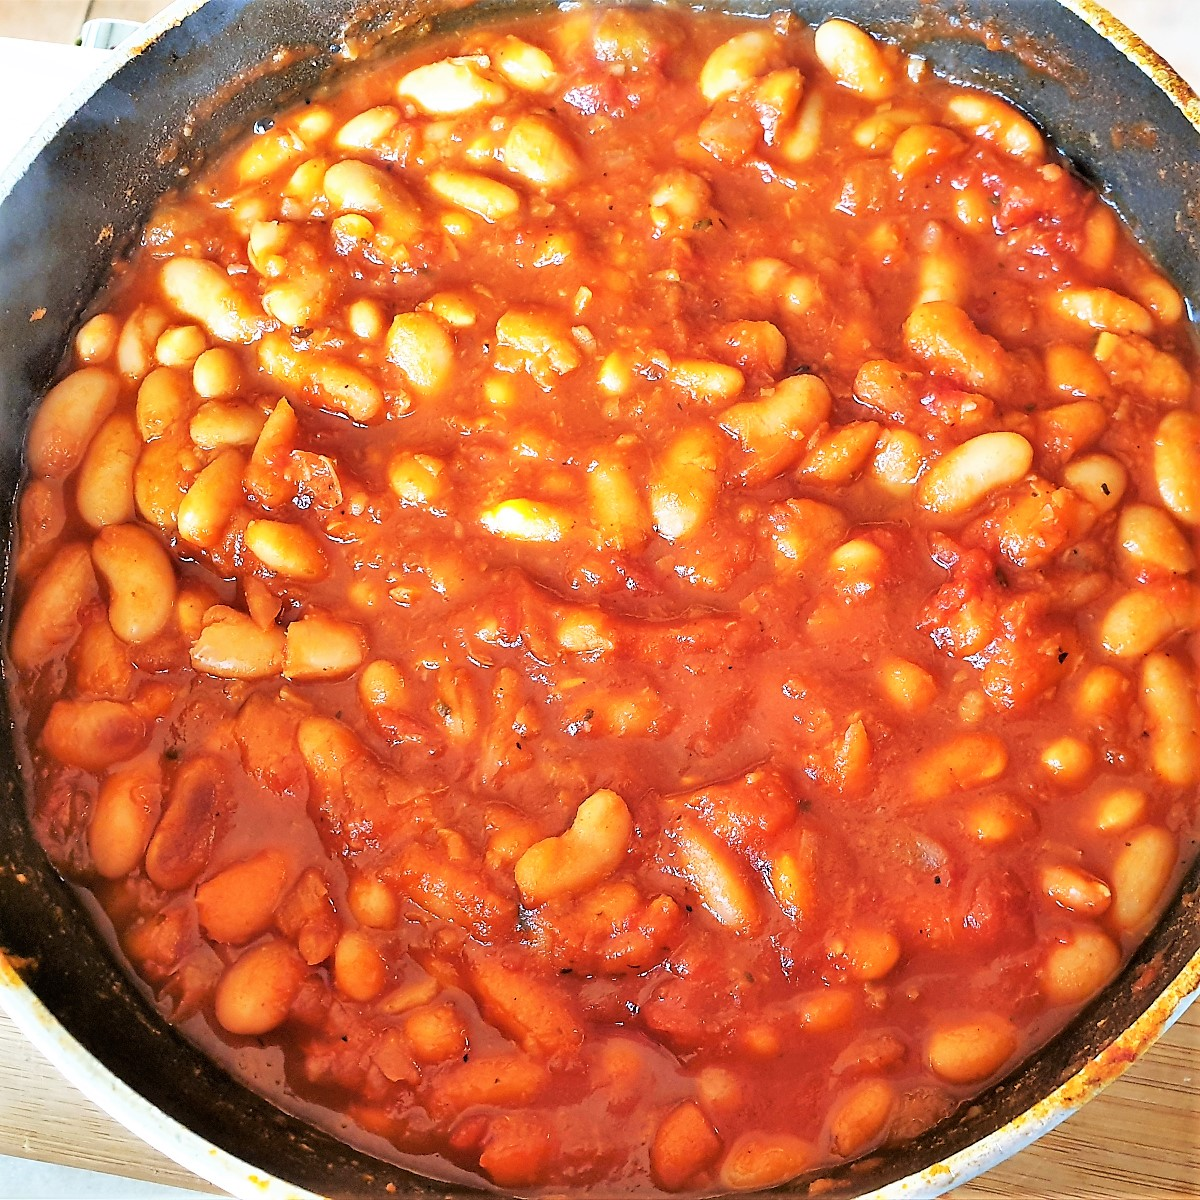 A pan of cooked baked beans.